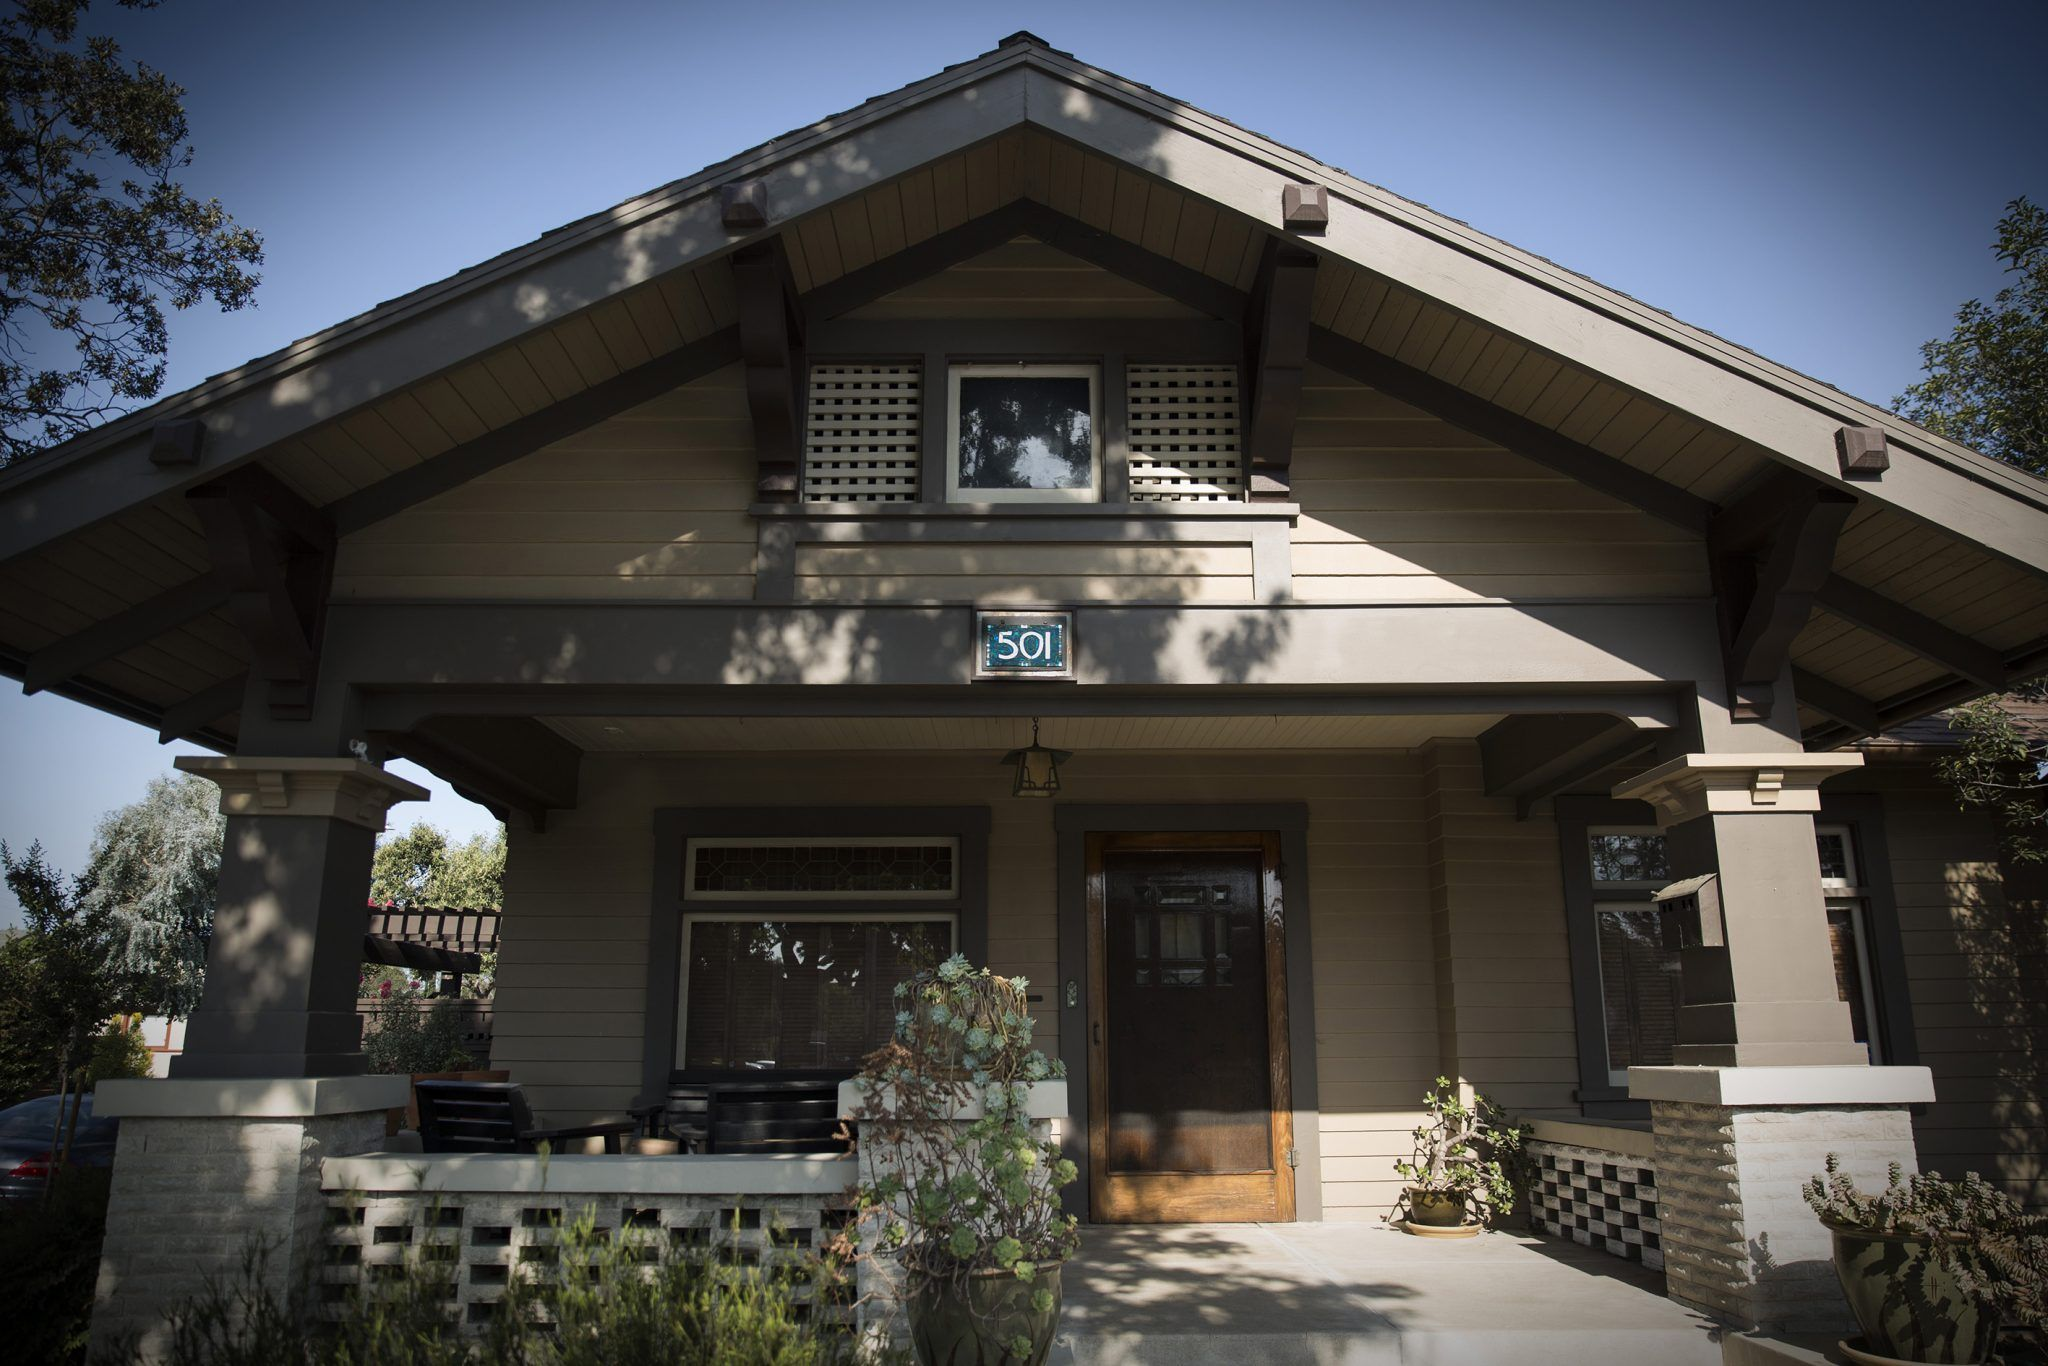 House Number For A Historic Craftsman Bungalow In Long Beach By